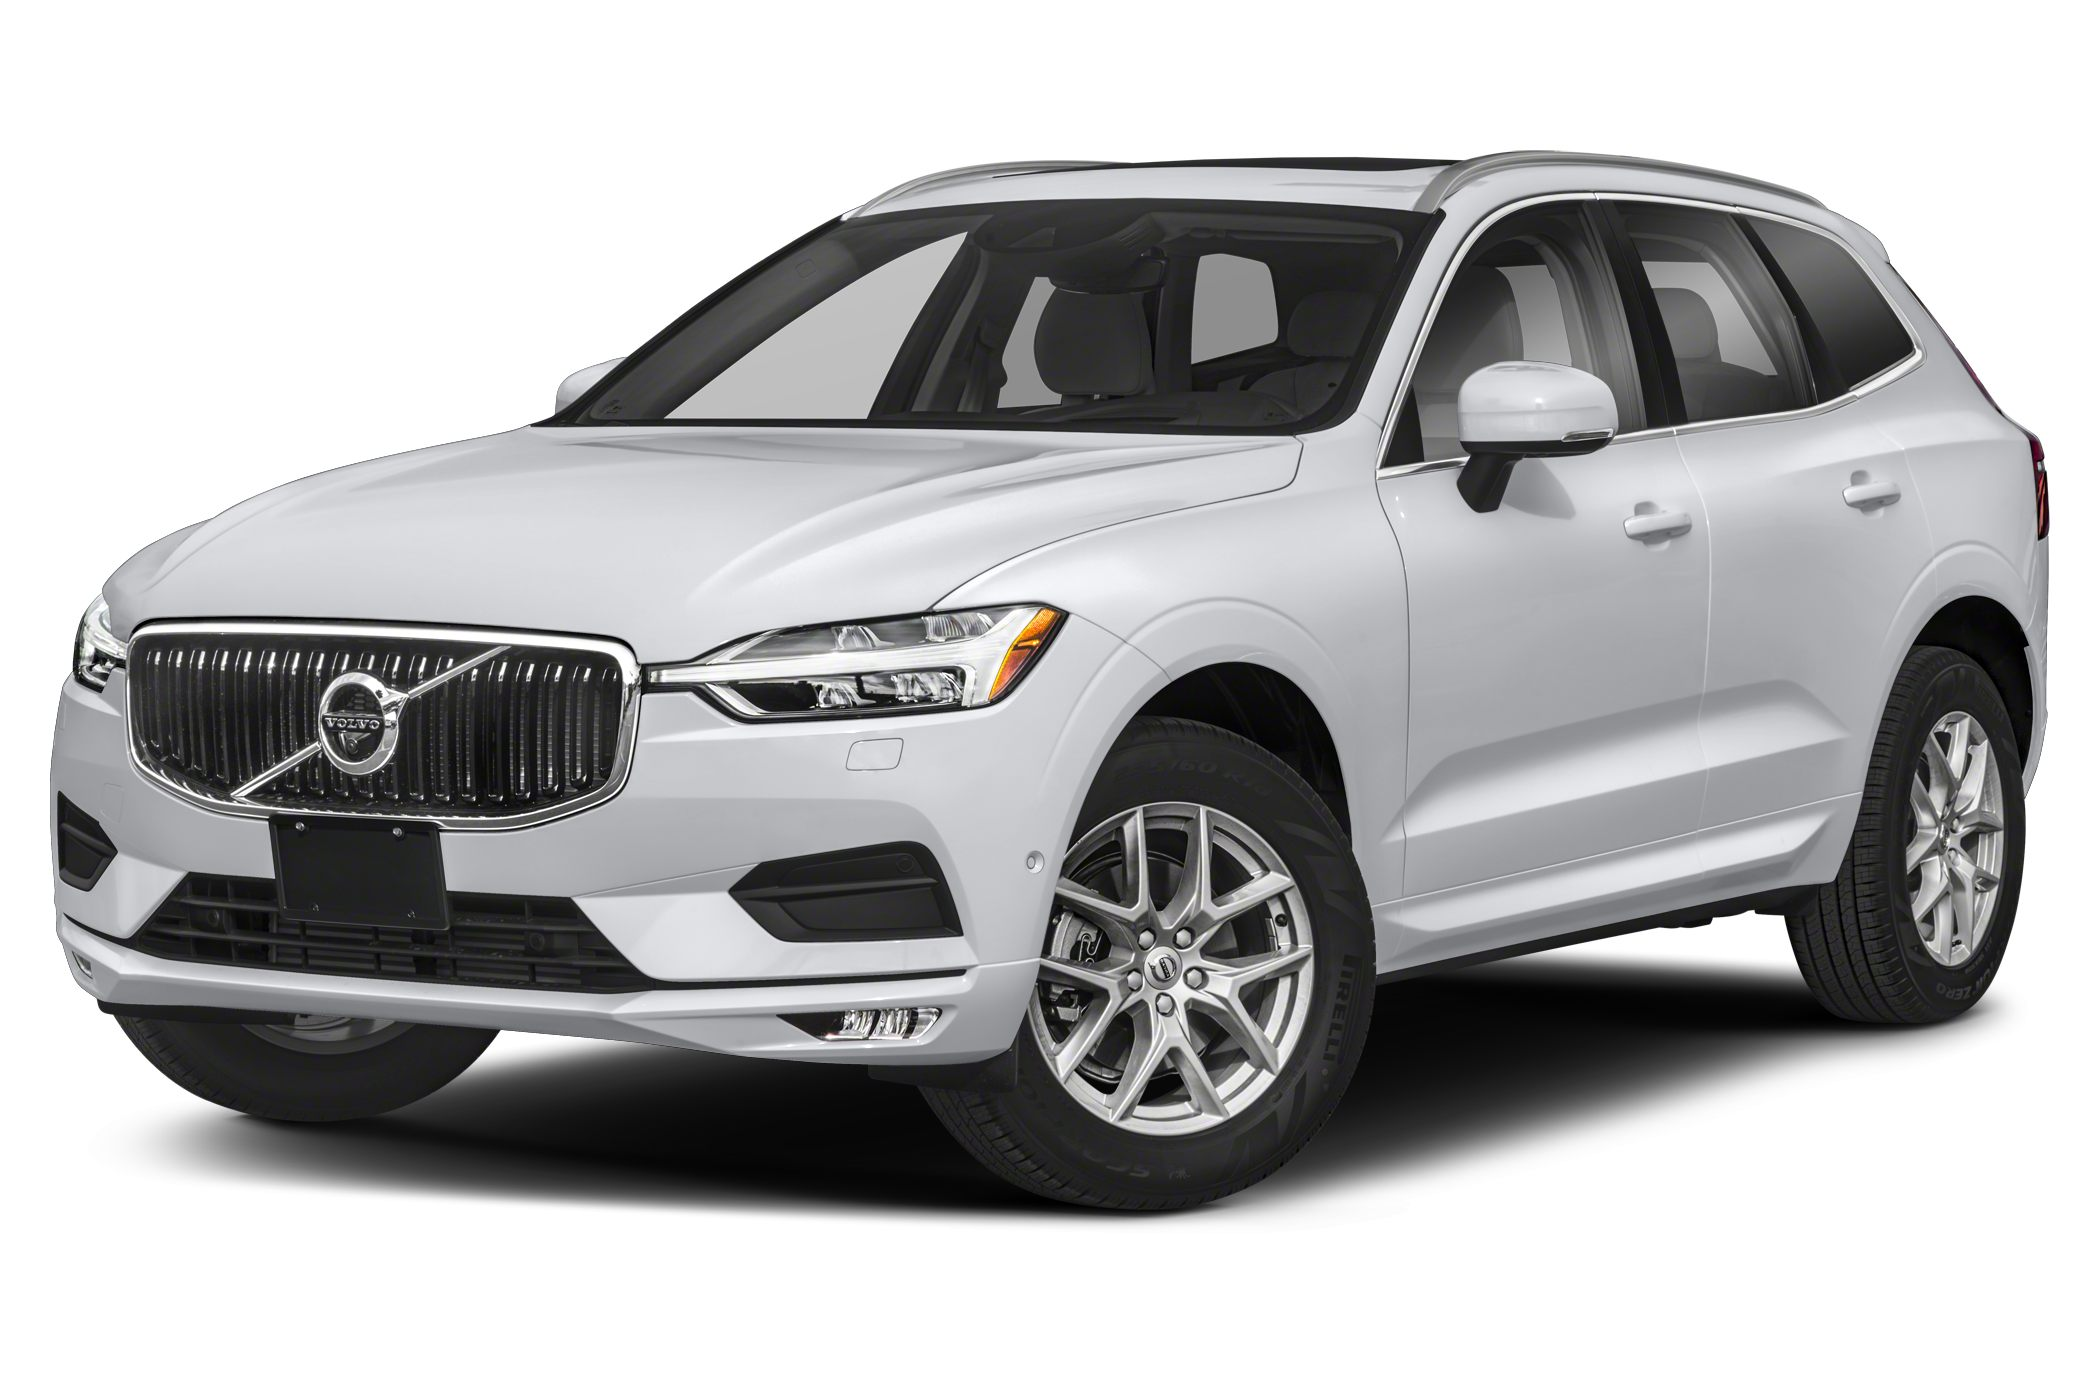 2018 Volvo XC60 T5 Inscription 4dr All-wheel Drive